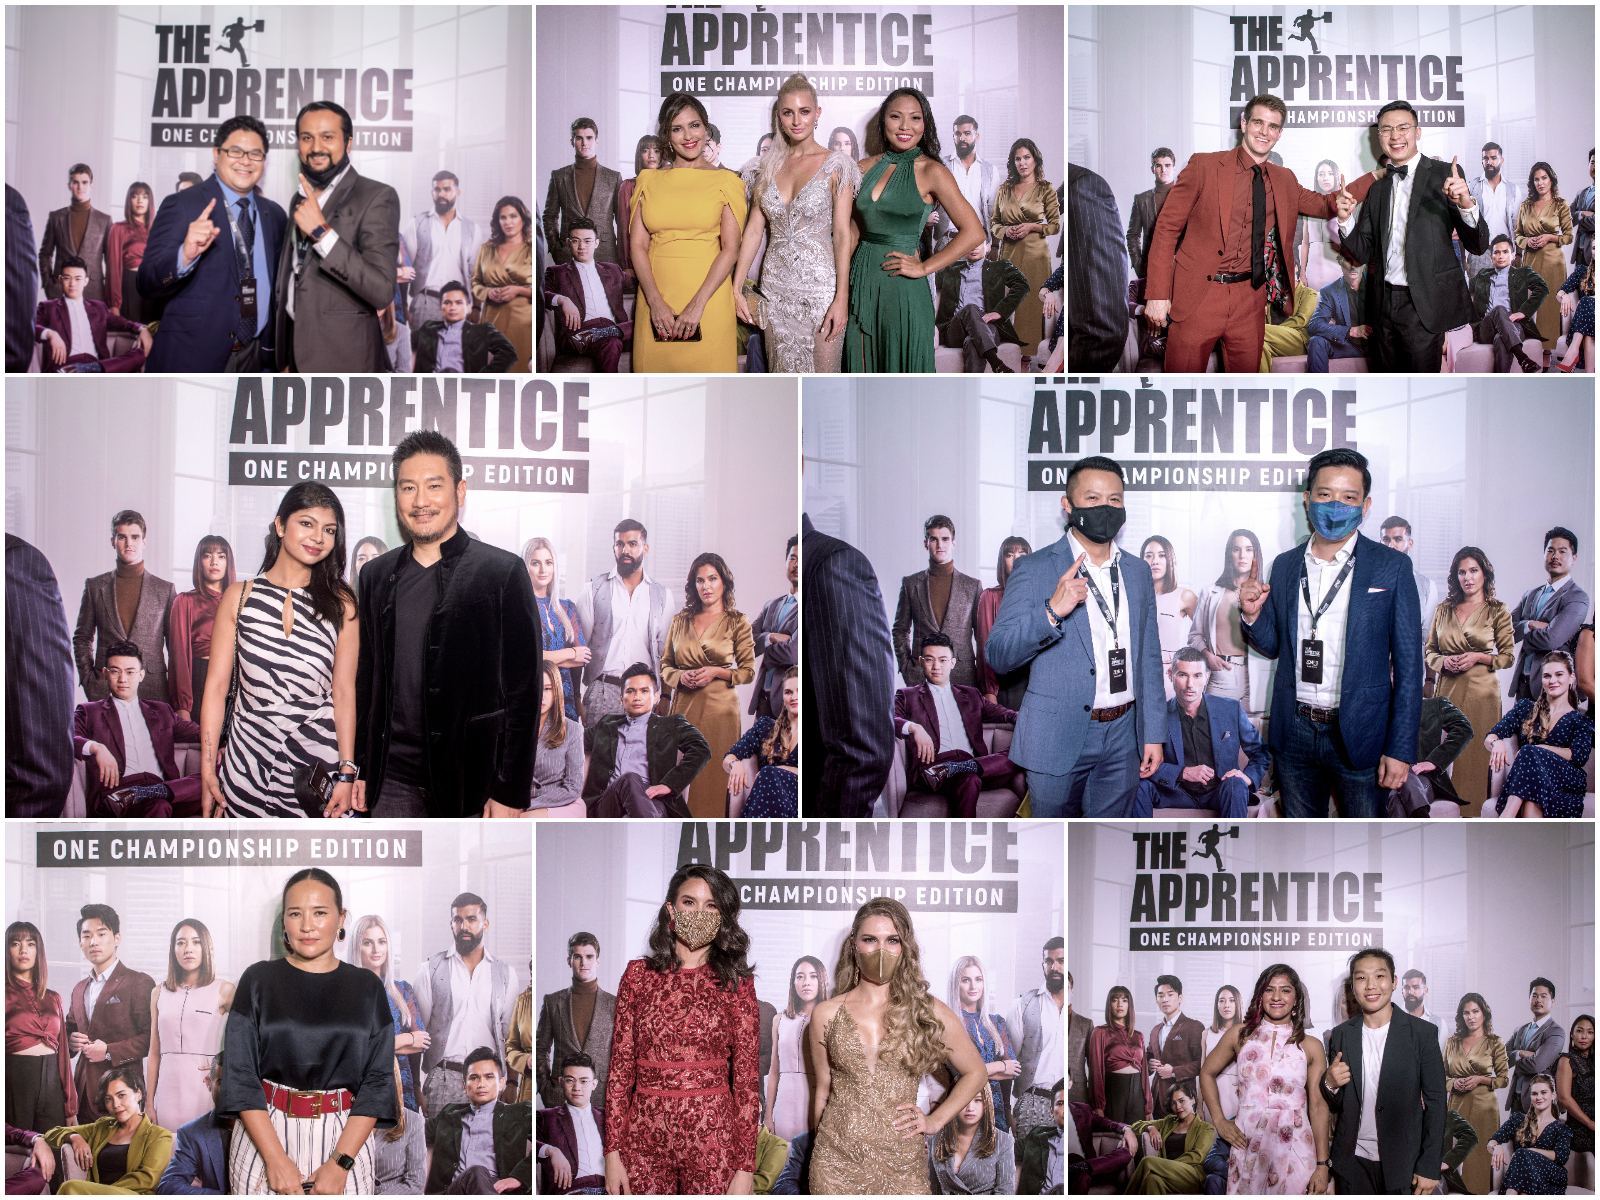 Apprentice ONE Championship Red Carpet